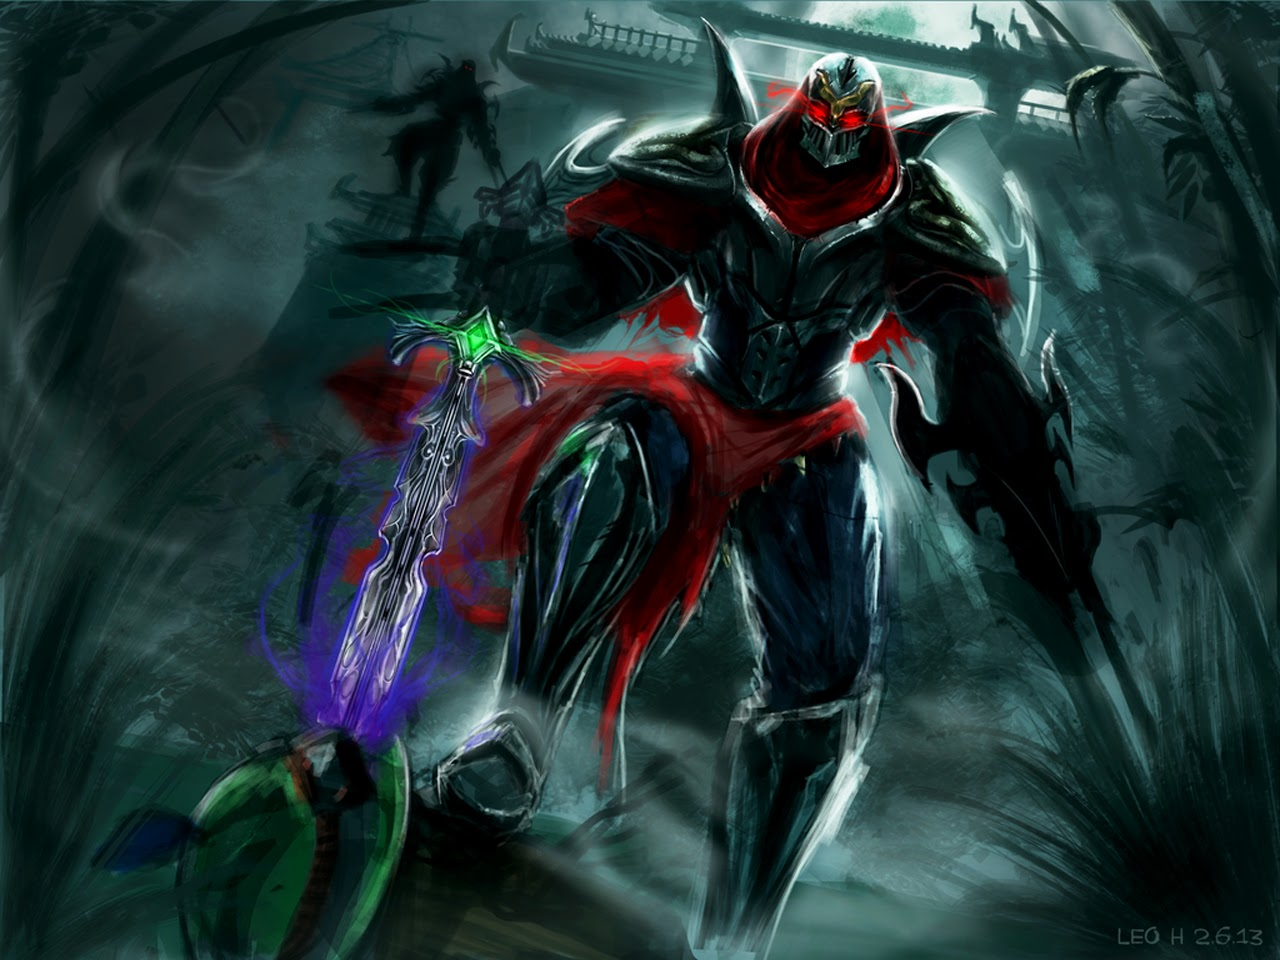 zed art league of legends lol champion hd wallpaper 1280x960 u5.